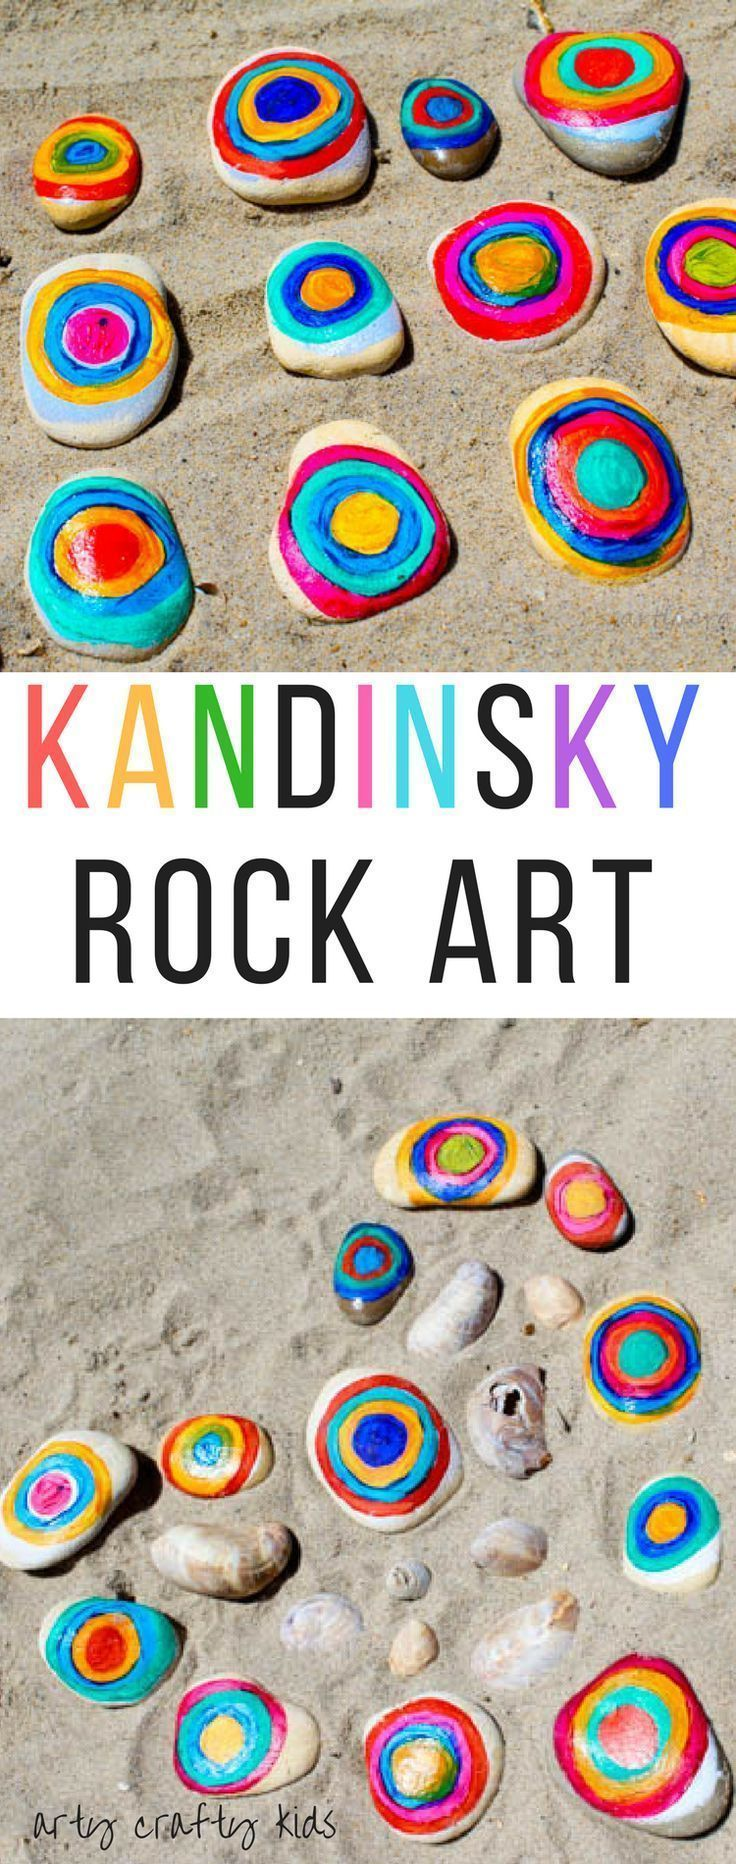 Arty Crafty Kids   Art   Kandinsky Inspired Rock Art   A fun interpretation of Kandinsky's famous conecentric circles. A great way for kids to learn about famous artists and create their own colouful nature art with rocks.